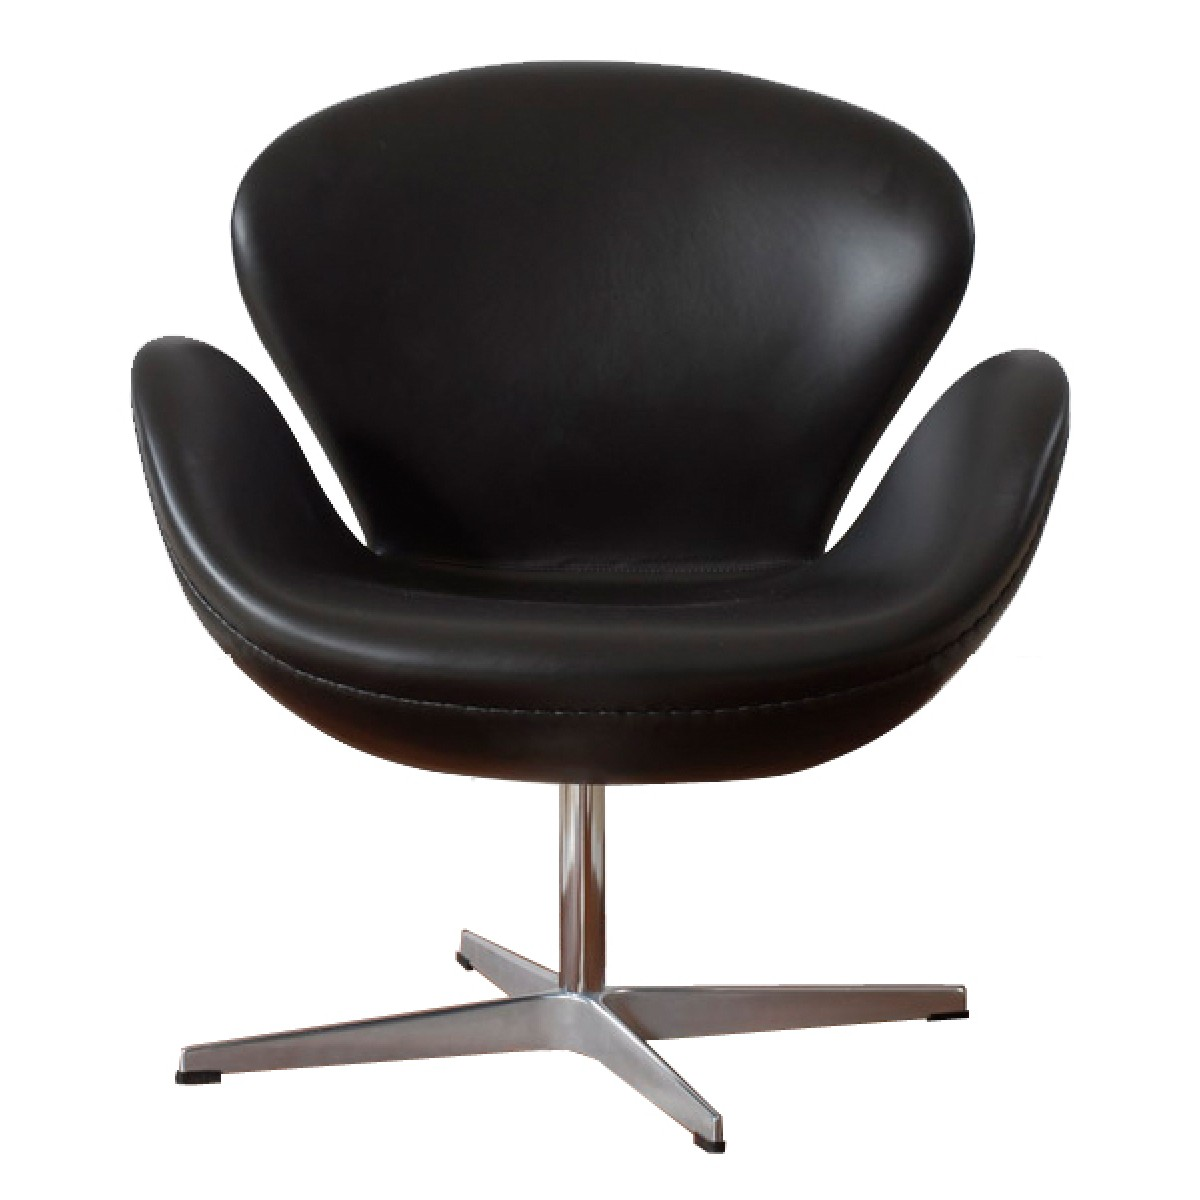 Arne Jacobsen Swan Chair Arne Jacobsen Style Swan Chair